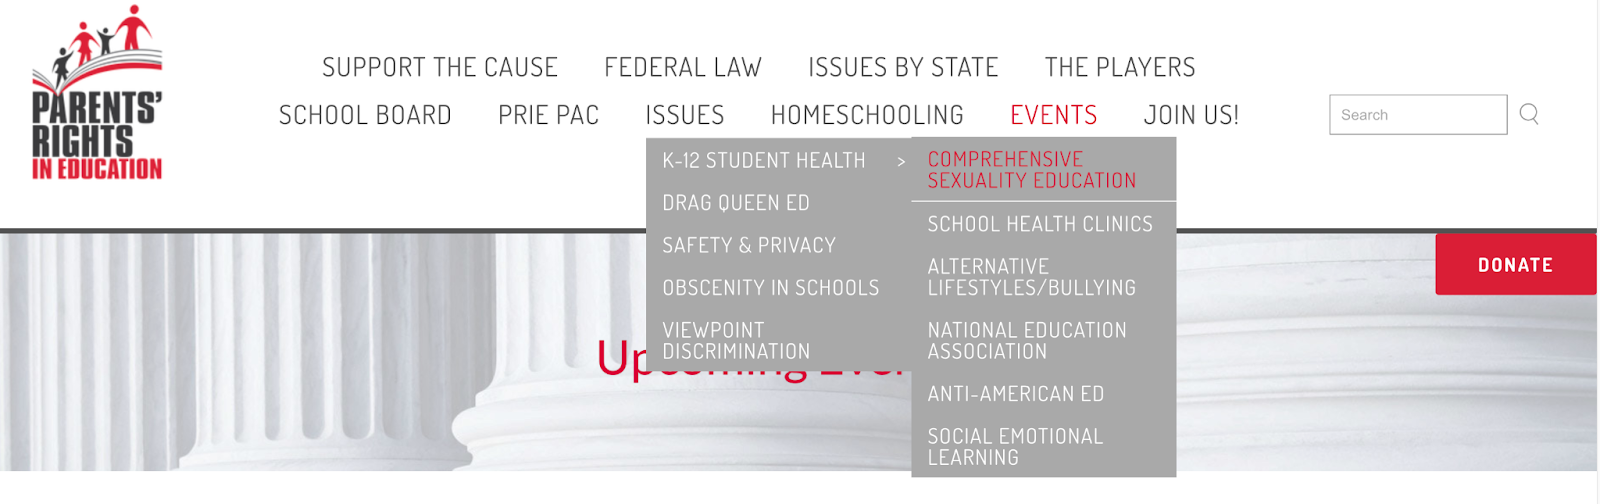 Parents' Rights in Education_website_issues